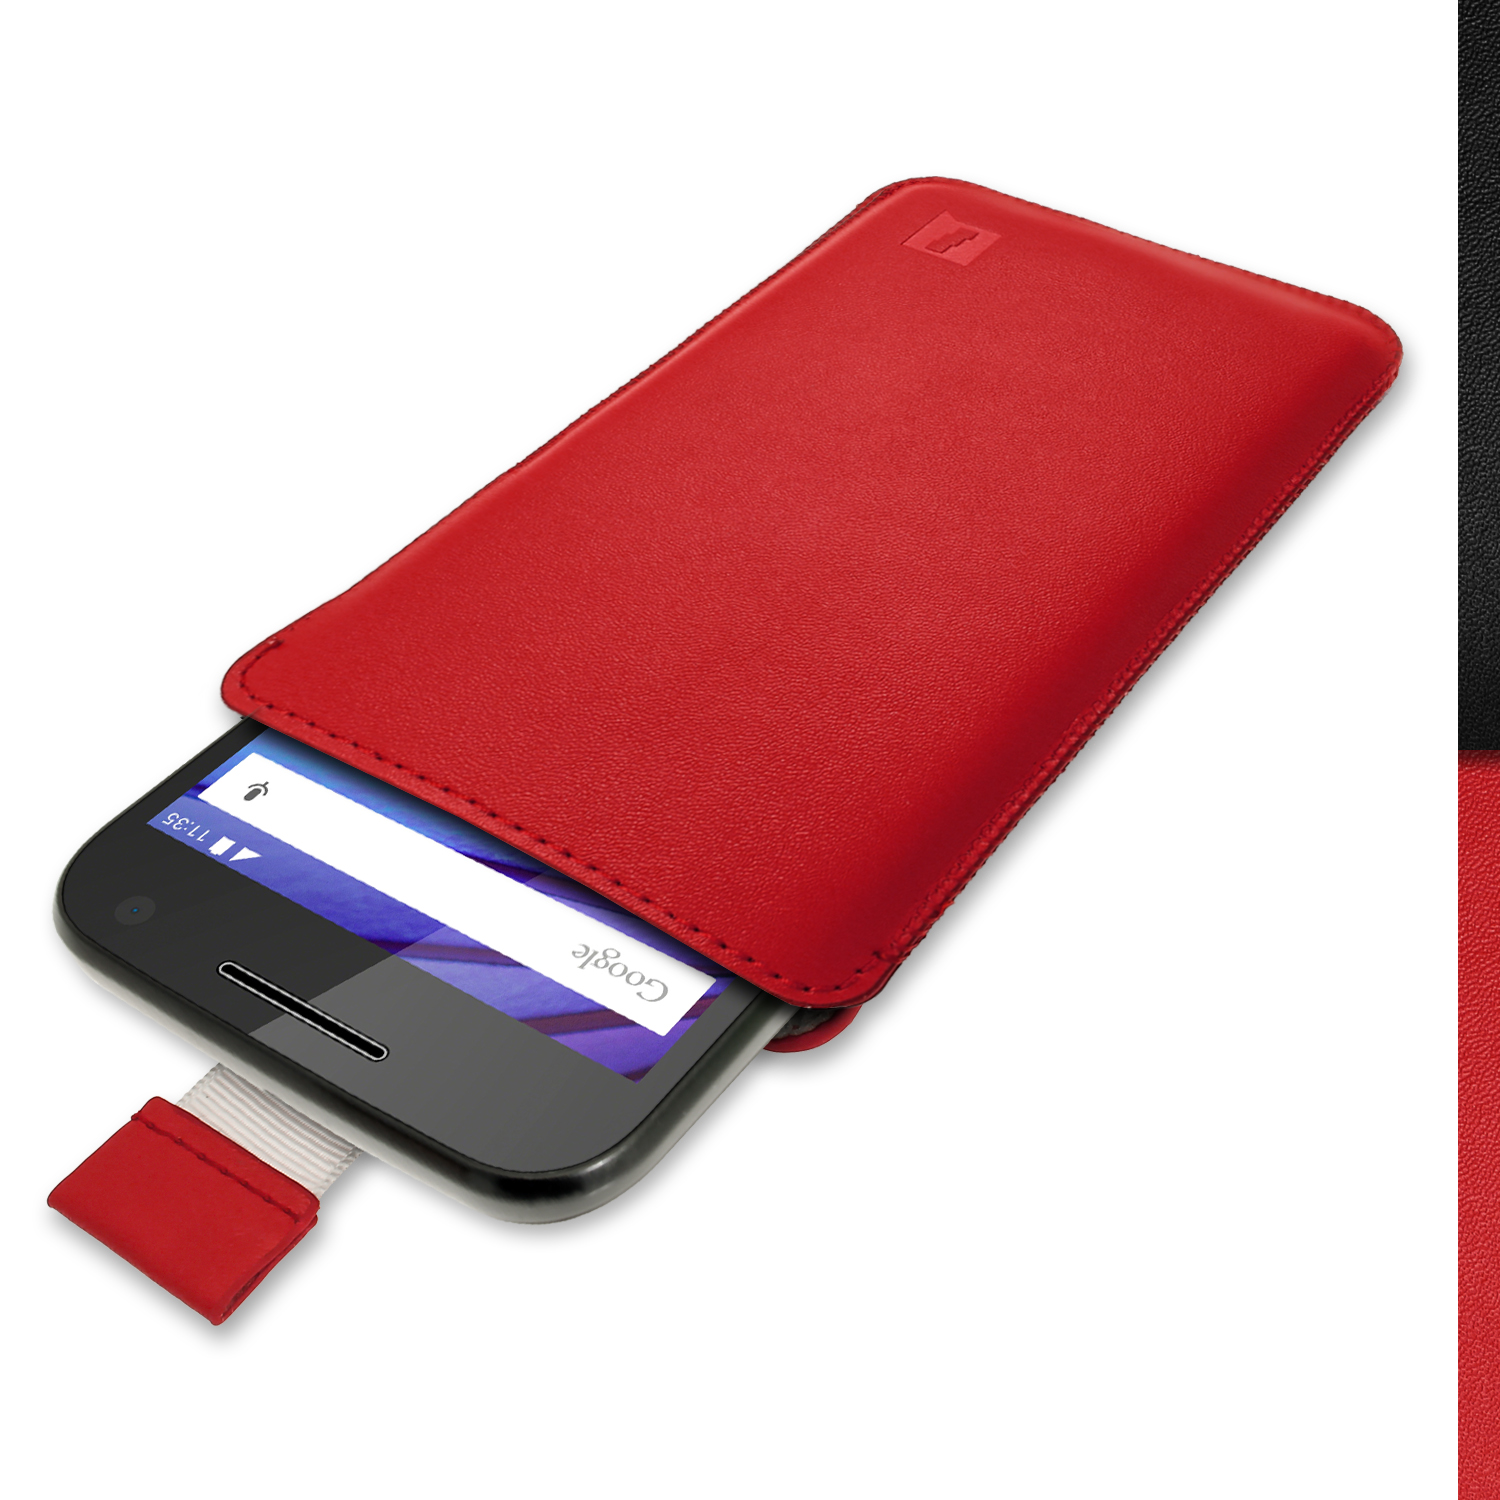 iGadgitz Red Leather Pouch Sleeve Case Cover for Motorola Moto G 3rd Generation 2015 XT1540